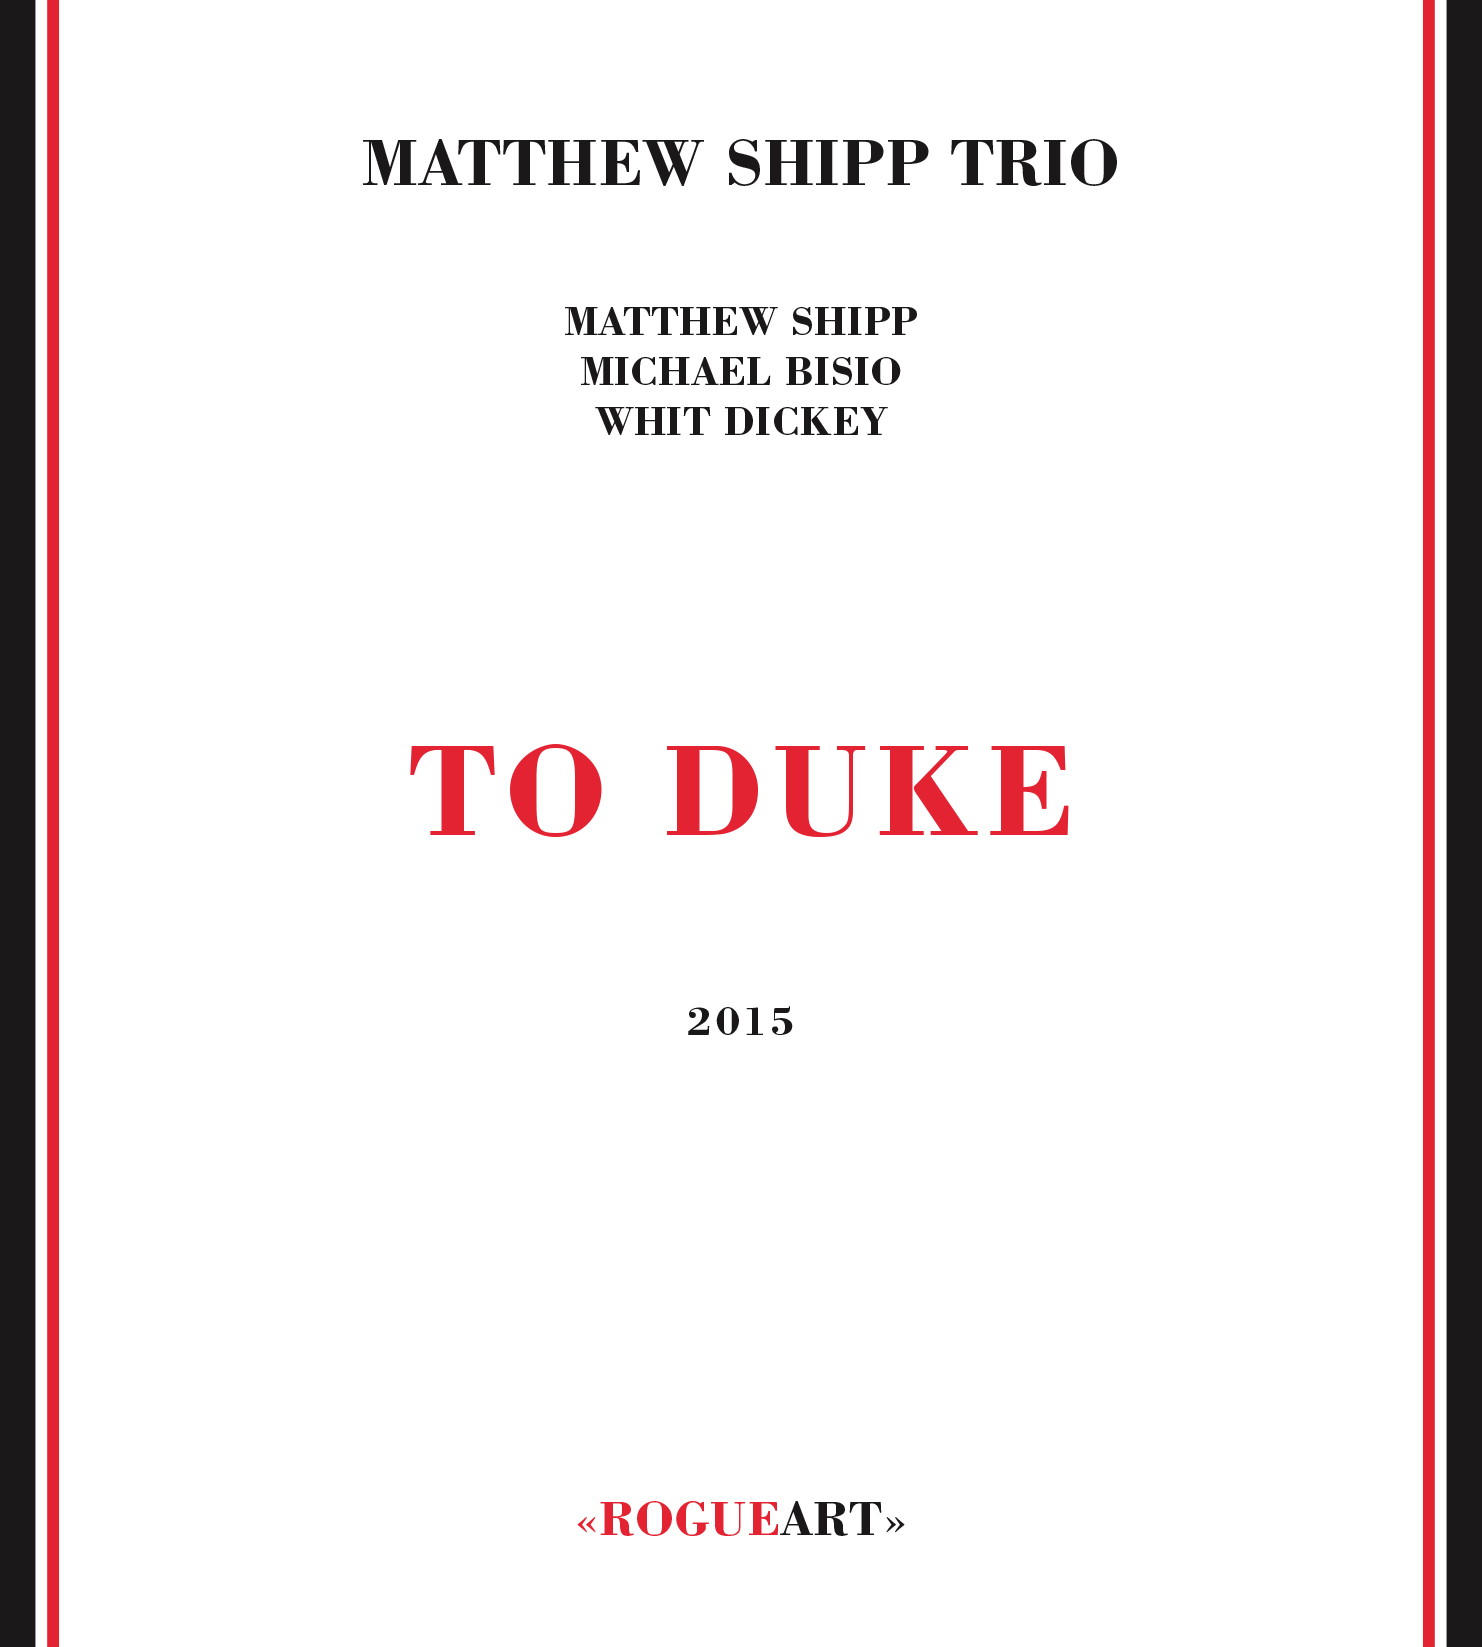 Front cover of the album TO DUKE